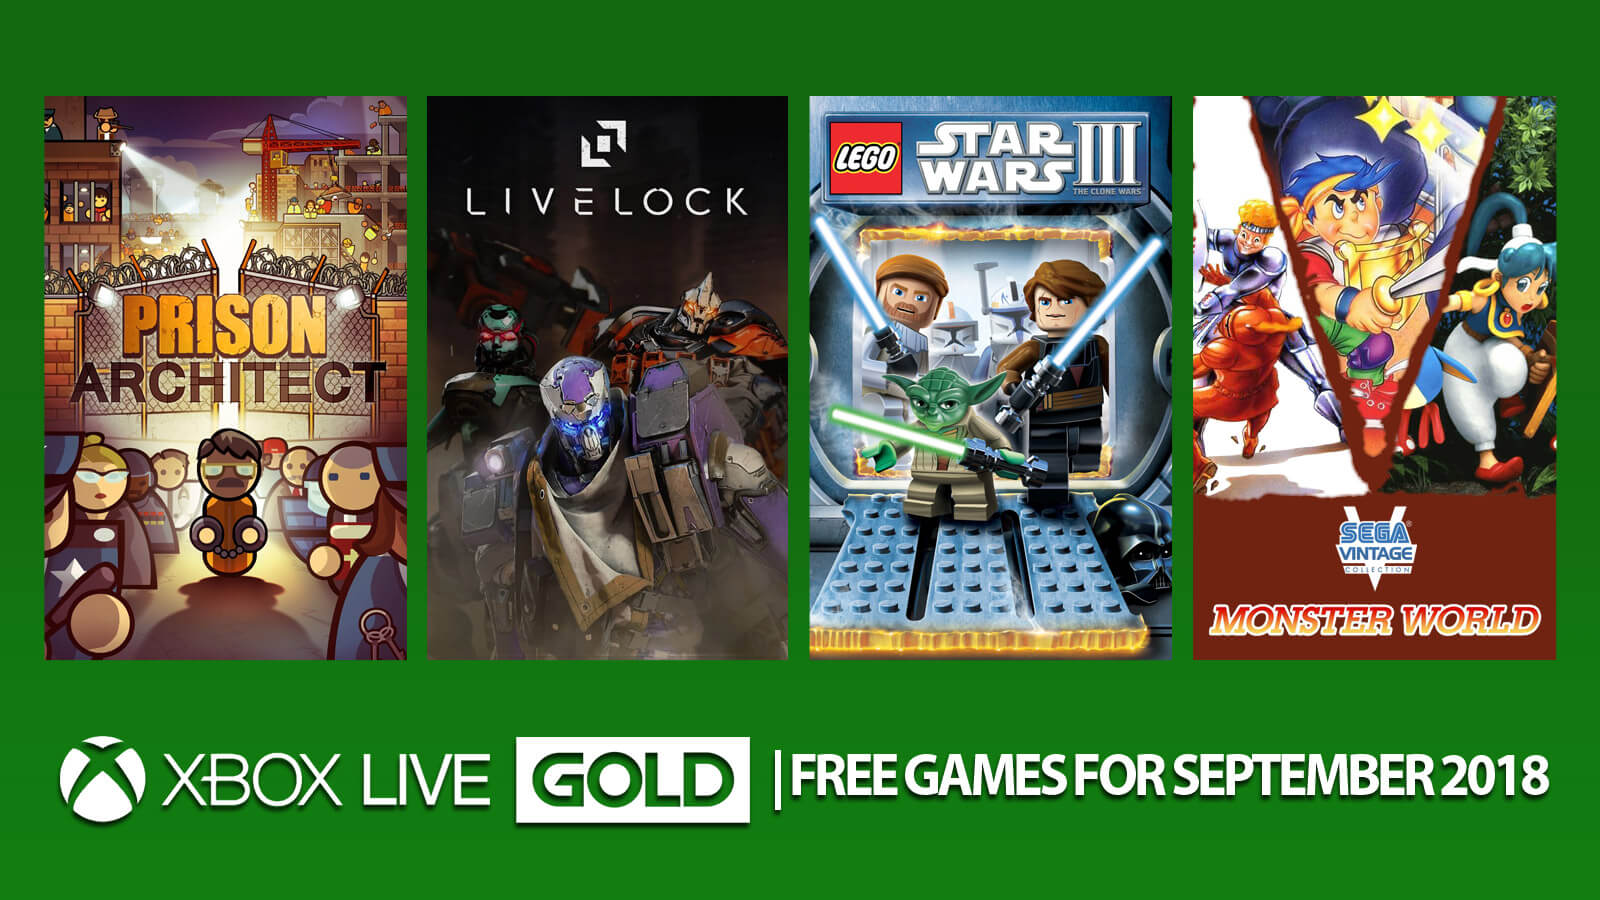 Xbox Live Gold Free Games For September 2018 Gameslaught